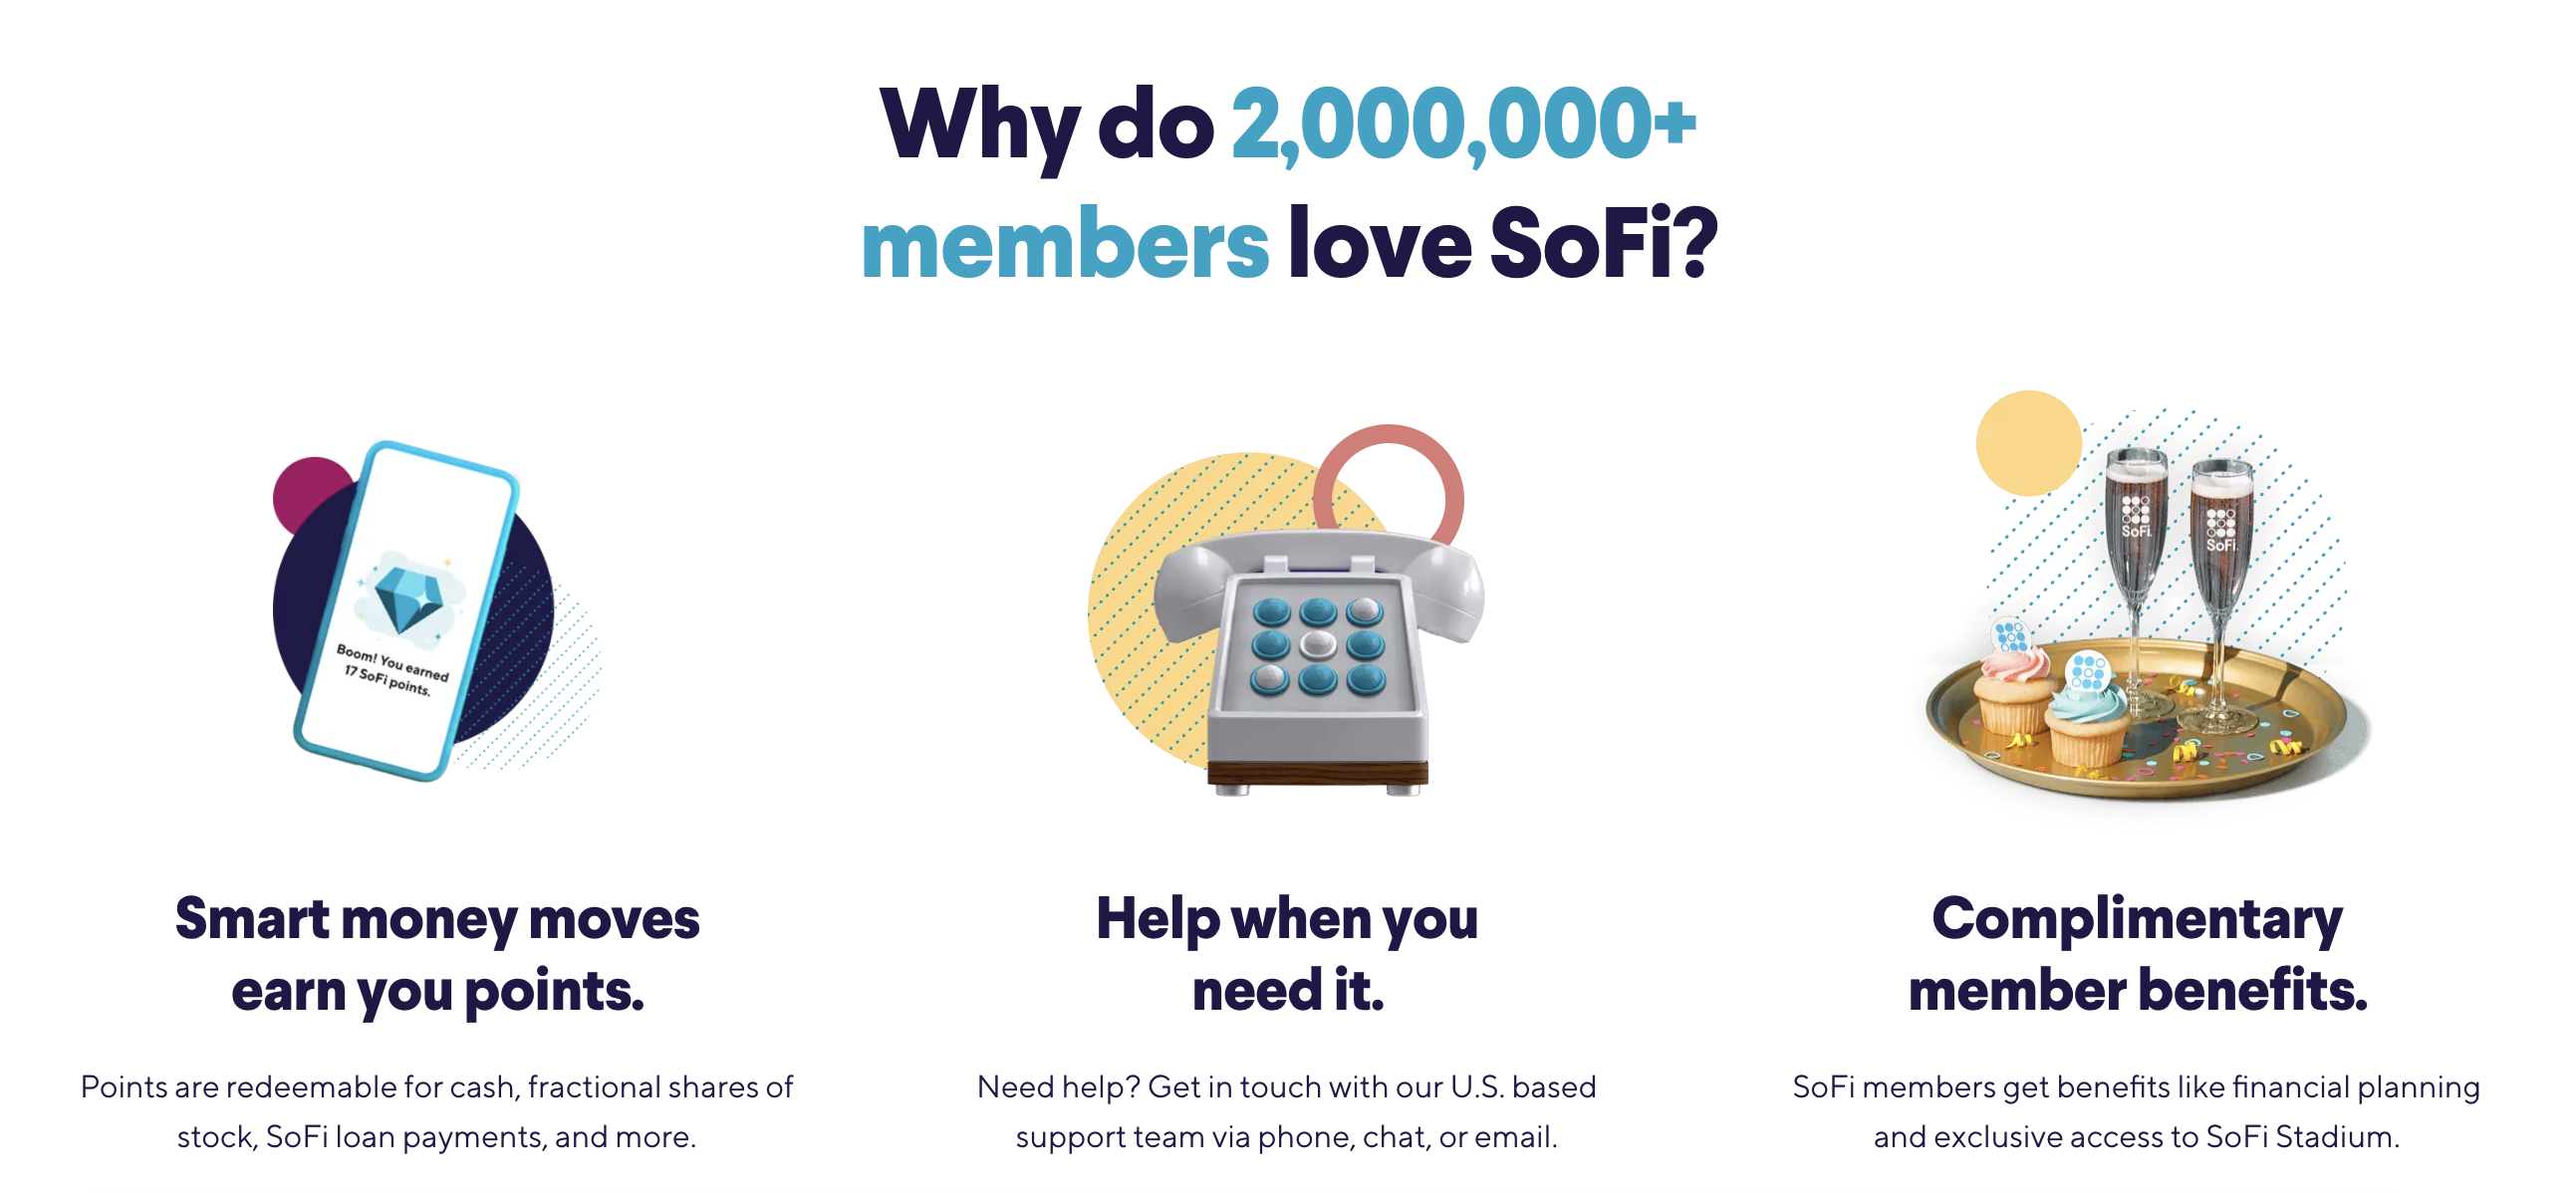 SoFi places extra emphasis on members reaching financial independence and achieving long term goals. They offer more than just low-commission stock trading and are similar to a bank in that they provide loans and insurance. Image from sofi.com.